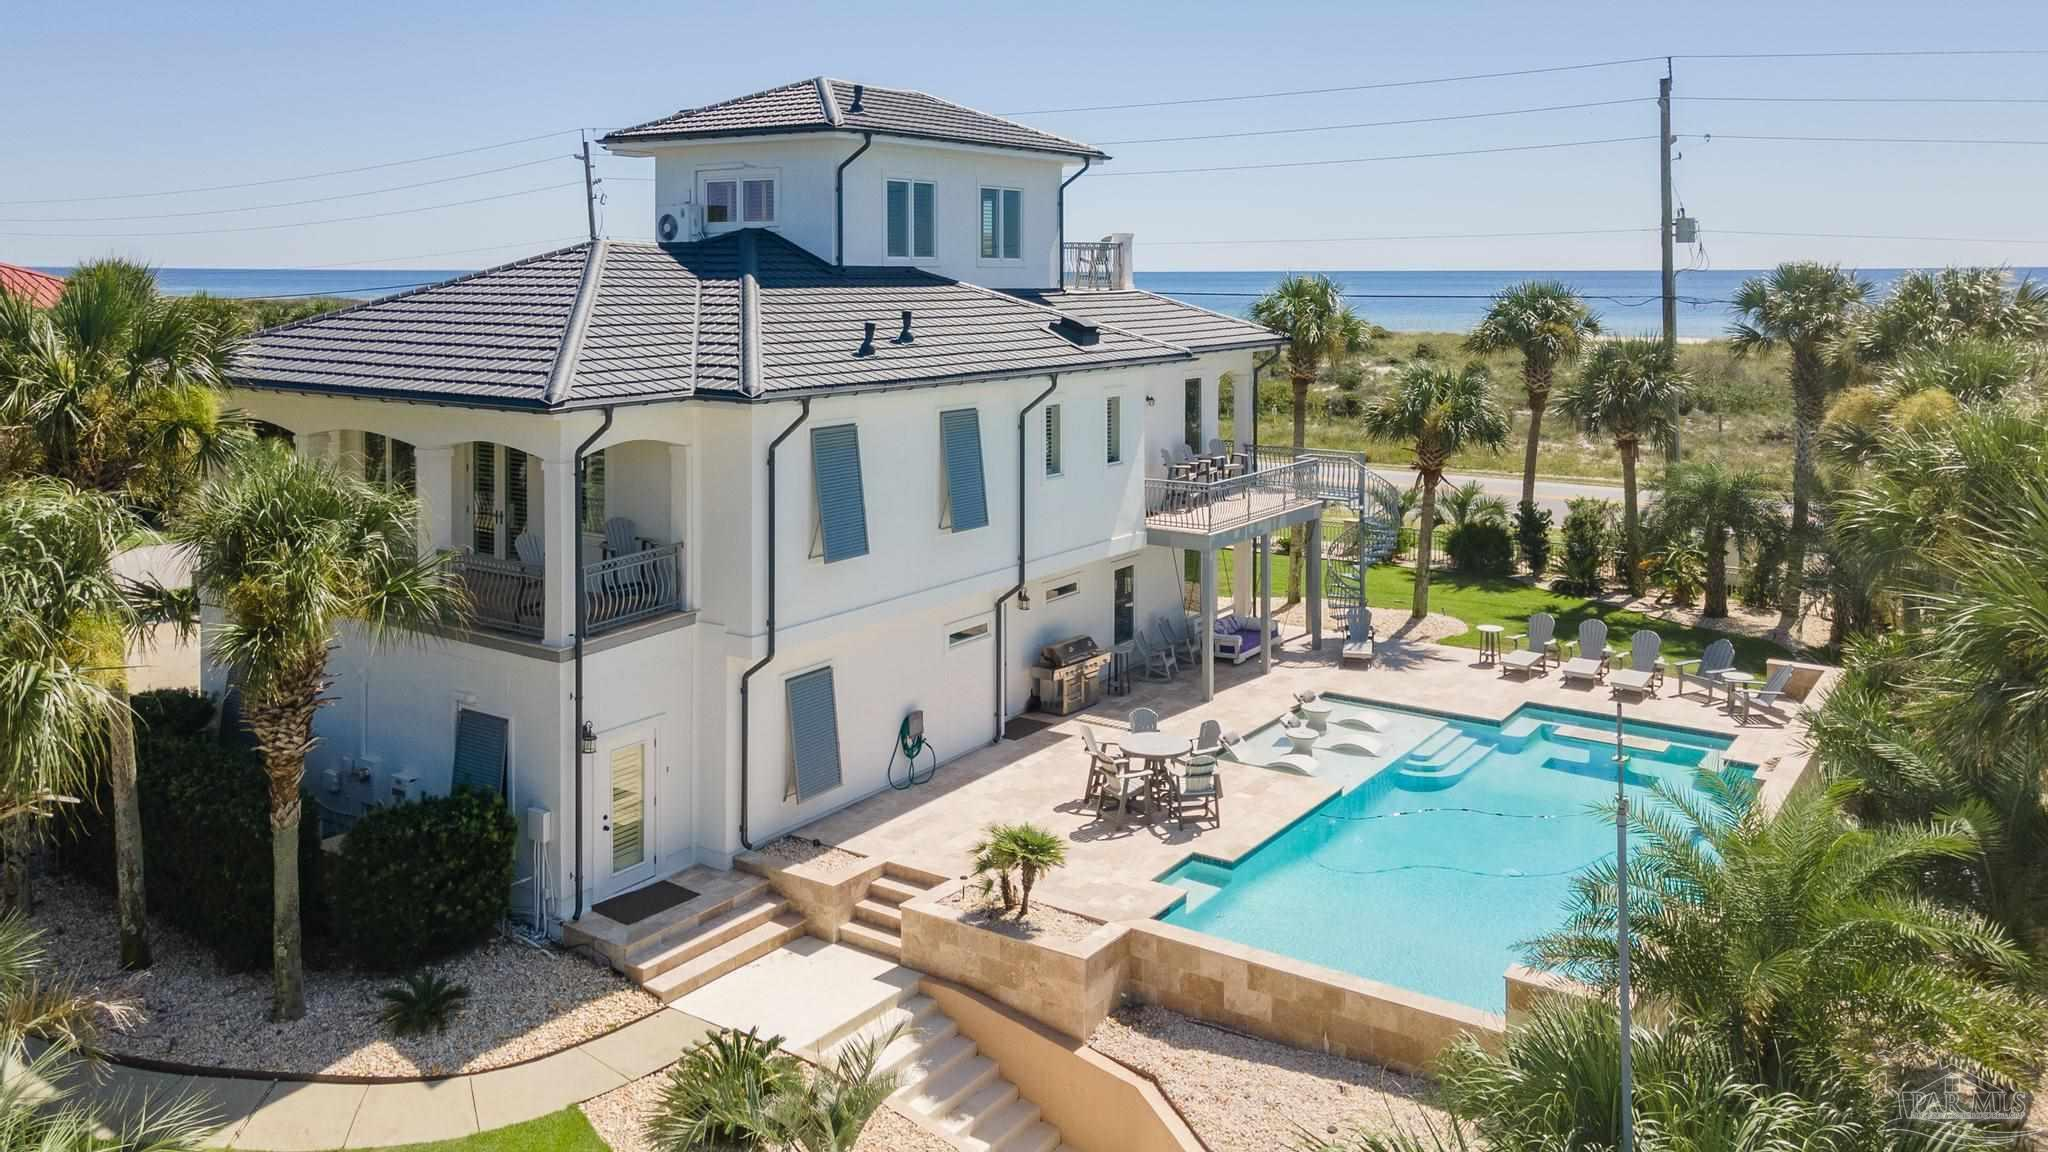 """""""ALL THAT"""" Perdido Key waterfront home is seeking a new owner to enjoy unobstructed beach & gulf views across miles of State Park Beach. The total coastal lifestyle includes boating from the deepwater boatslip/lift at the back door; lounging in the """"hollywood"""" style pool; long strolls on two miles of beach; breezy covered porches naps and memory making moments. Three stories of immaculately maintained and well planned space include a great room with custom cabinets and built-ins, porch access and a spiral staircase to the pool area.""""Chef's"""" kitchen complete with Thermador gas(propane) cooktop, deep fryer, steamer, Sub-Zero built-in refrigeration, convection/conventional oven with warming drawer & built-in microwave. Walk-in pantry. All closets and pantry have custom shelves/storage. Half bath is conveniently located for guests. The master suite spans the entire width of the north side of the home french doors to one of the many covered porches. The master bath is spacious and elegant offering a large walk-in shower, deep jetted tub, double vanities and a private water closet. A large walk-in wardrobe room/closet complete the Master Suite. On the first level are two spacious bedrooms,  each with french doors to a covered porch, one has ensuite bath room, and the other is served by a hall bath. The laundry room is extra large with storage and folding area, and will accommodate a washer and 2 dryers. Access the TO DIE FOR swimming pool from the ground floor or greatroom level. There is an oversized garage with cabinet storage, a refrigerator and commercial ice machine. In addition there is a conditioned space that is perfect for a bunkroom, office or studio. It is concievable that the west side of the garage could be configured as an """"in-law"""" suite. The professionally landscaped lawn is dotted with palm trees, and is set off by the custom iron fencing. New roof, exterior coating, interior paint, HVAC (upstairs unit). H/C garage and whole house generator. Call Today!"""